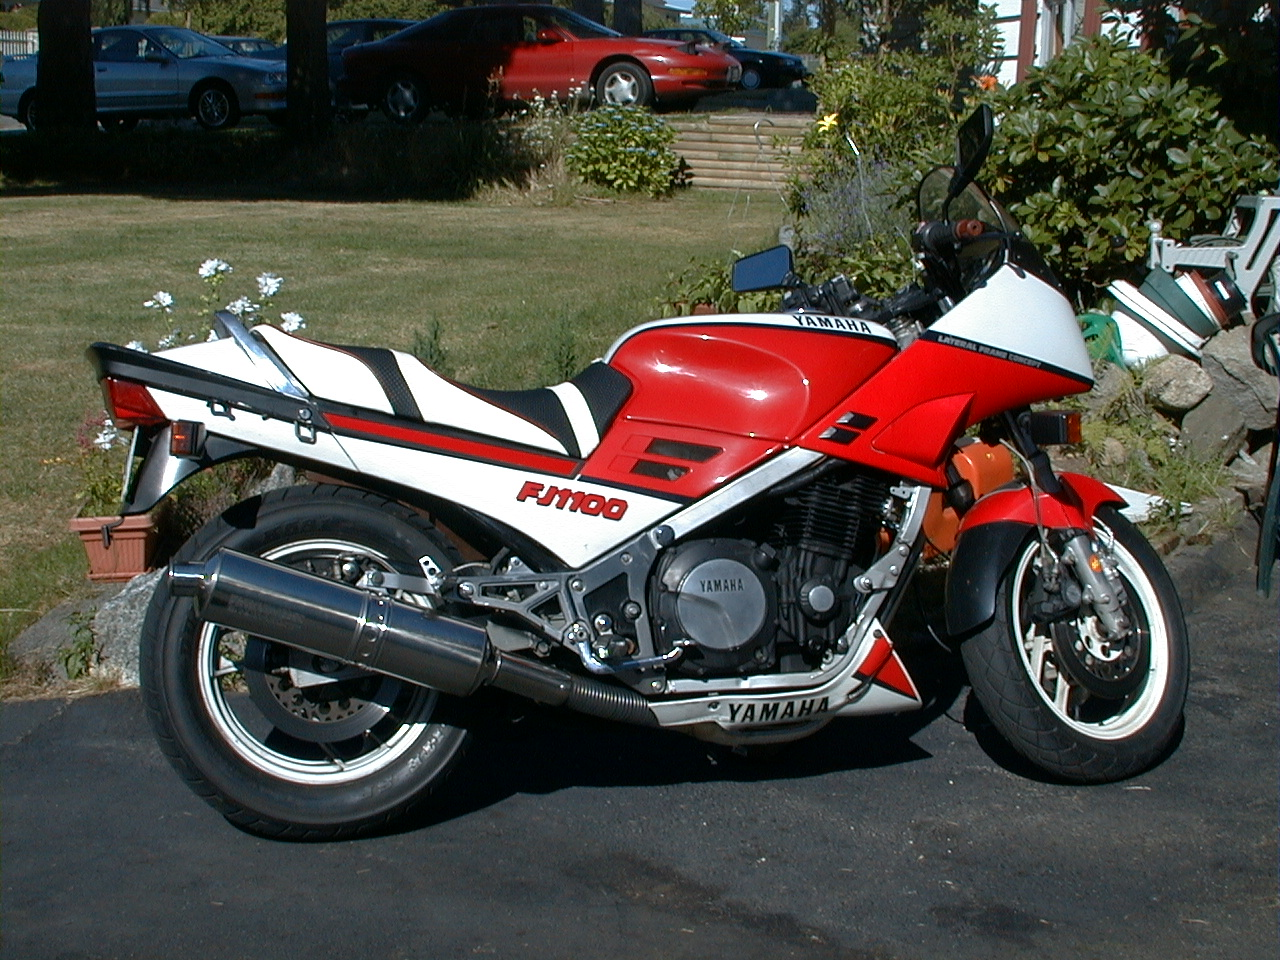 Yamaha RD 350 (reduced effect) 1987 #6